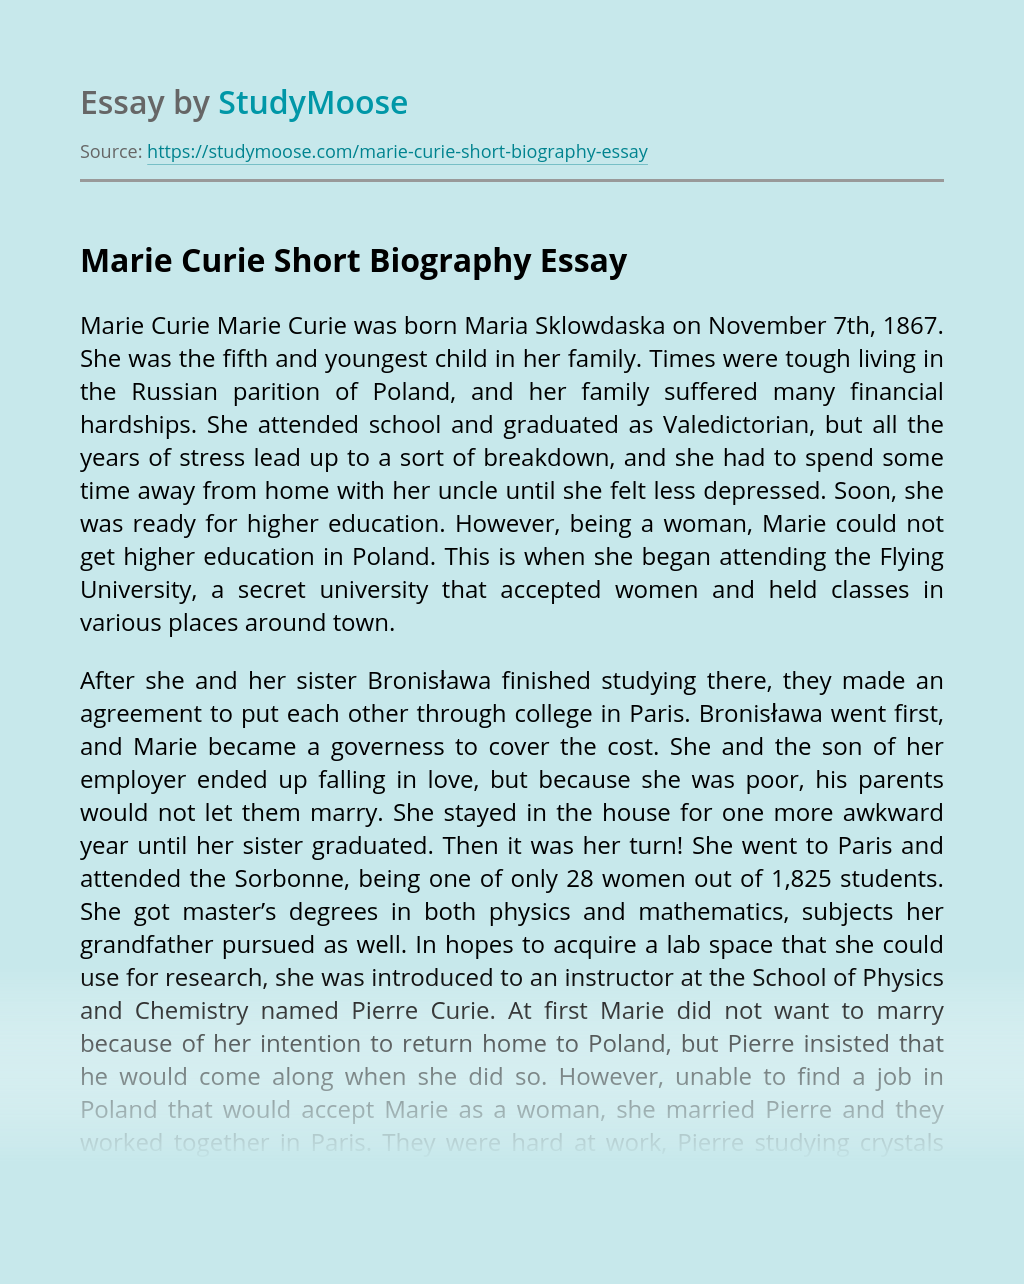 Marie Curie Short Biography